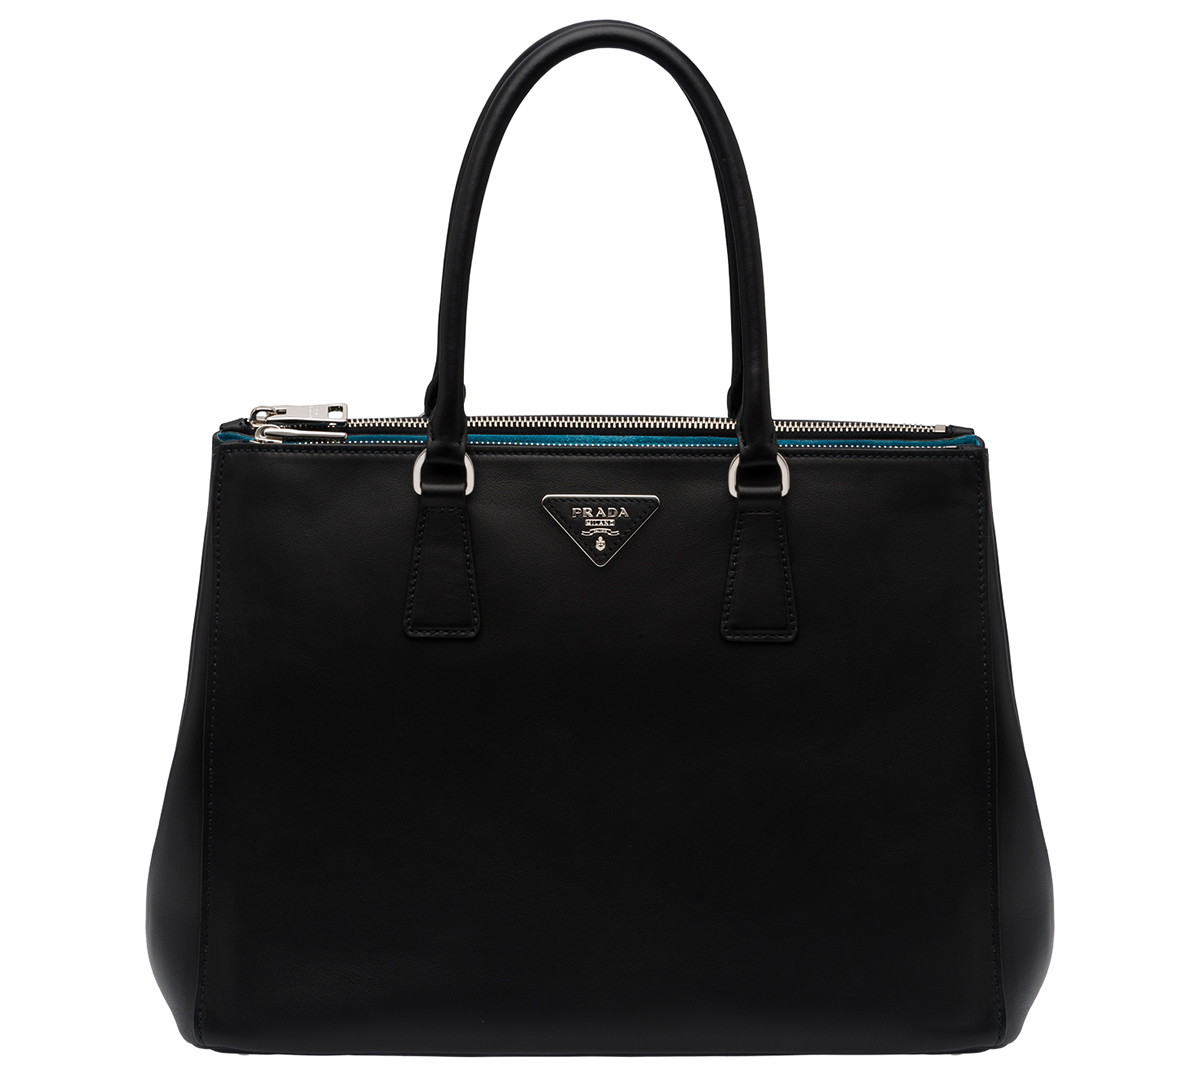 Prada Galleria Bag Black